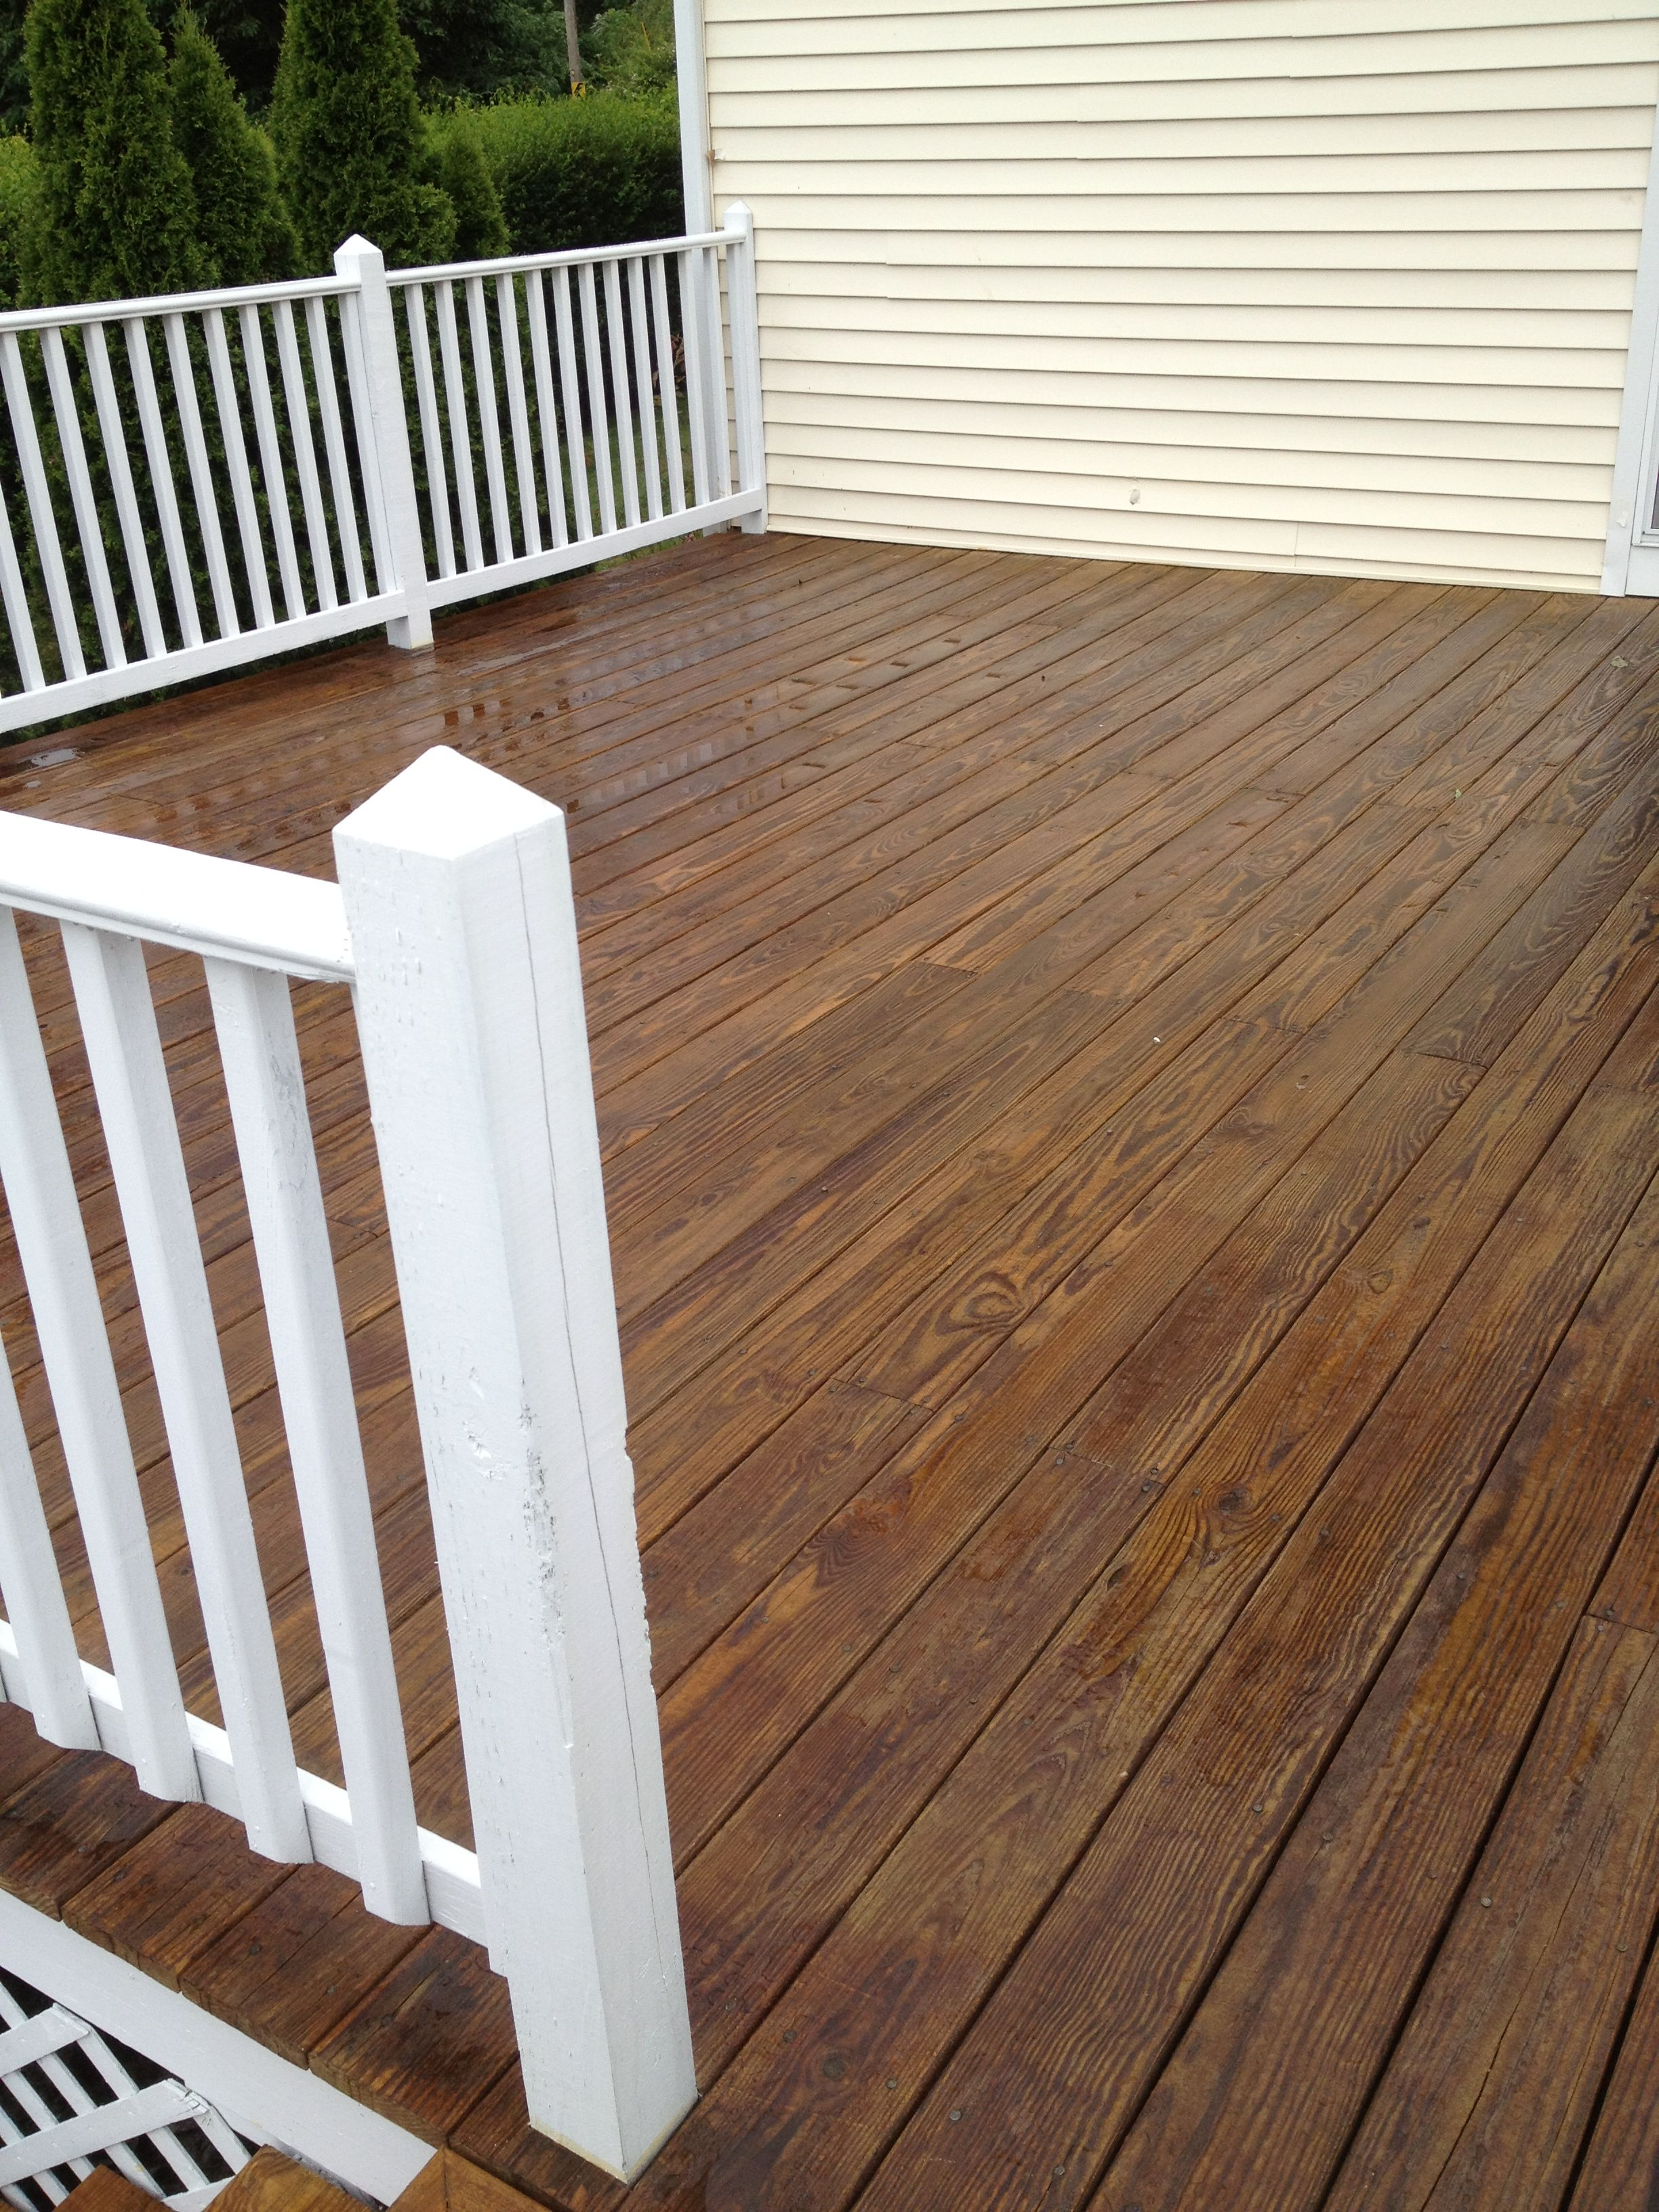 Pressure Treated Wood Decking And White Painted Trim New England